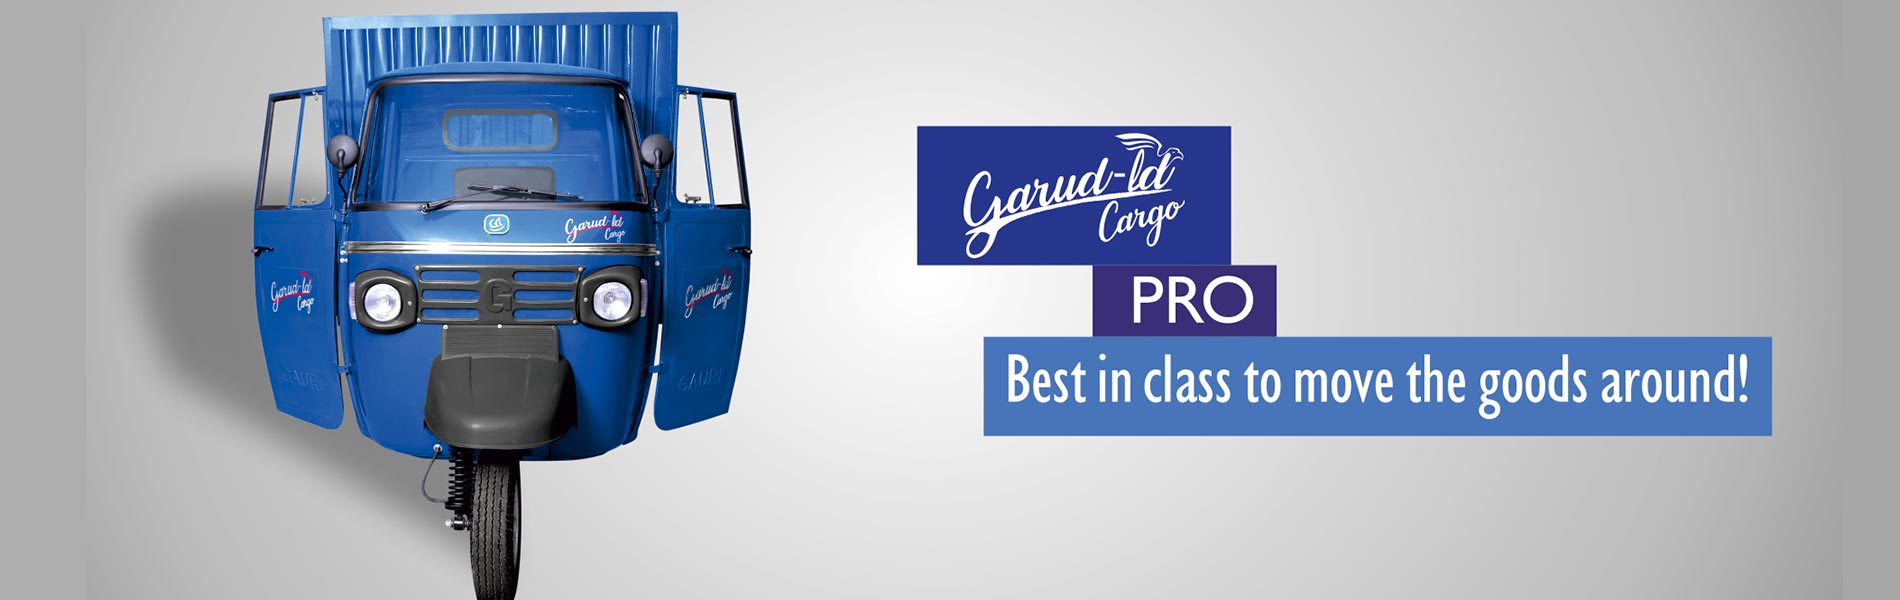 GAURI AUTO INDIA PRIVATE LIMITED